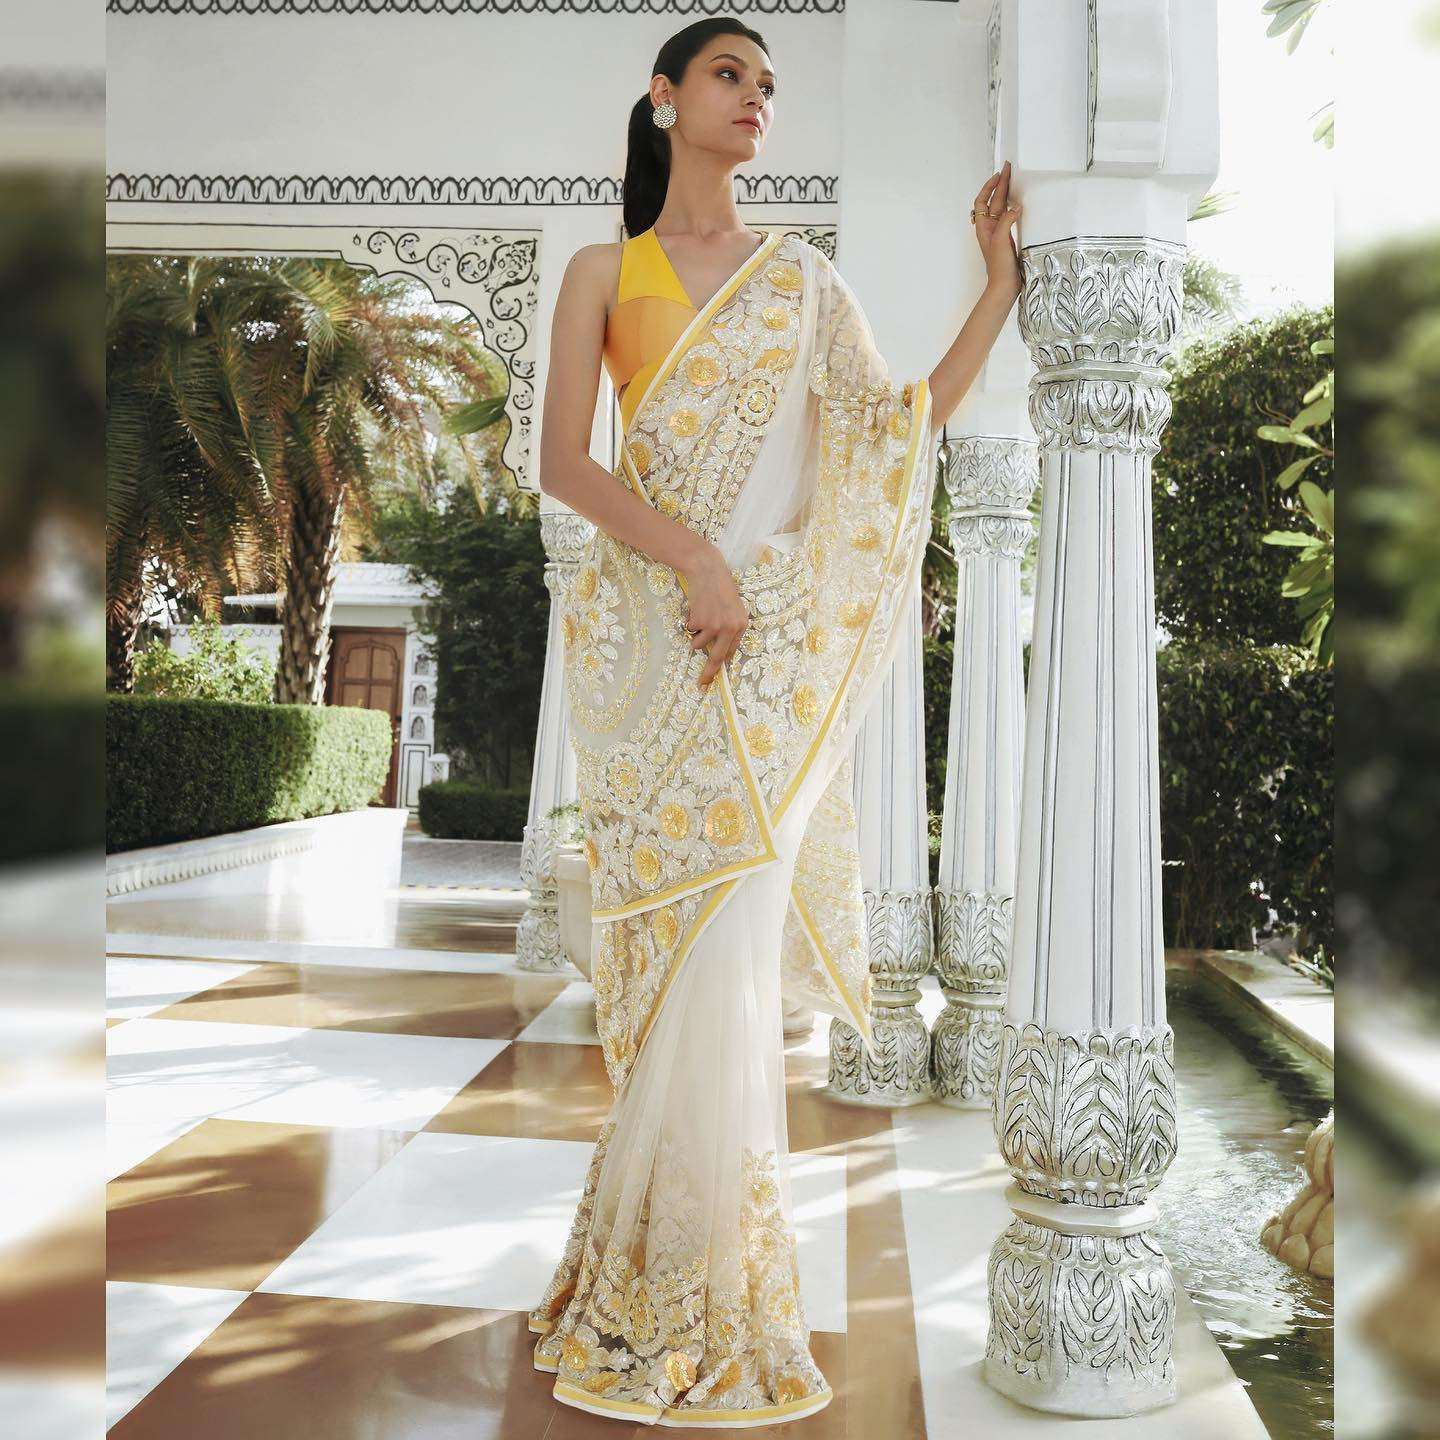 Confiding sweet sonnets of spring sequins and all hues sublime a sparkling addition to our repertoire in Kashmiri craft intertwine! Yards of timeless elegance this classic ivory Saree revisits a fresh perspective with our eccentric two-toned bodice and concurrent weaving patterns! 2021-04-07